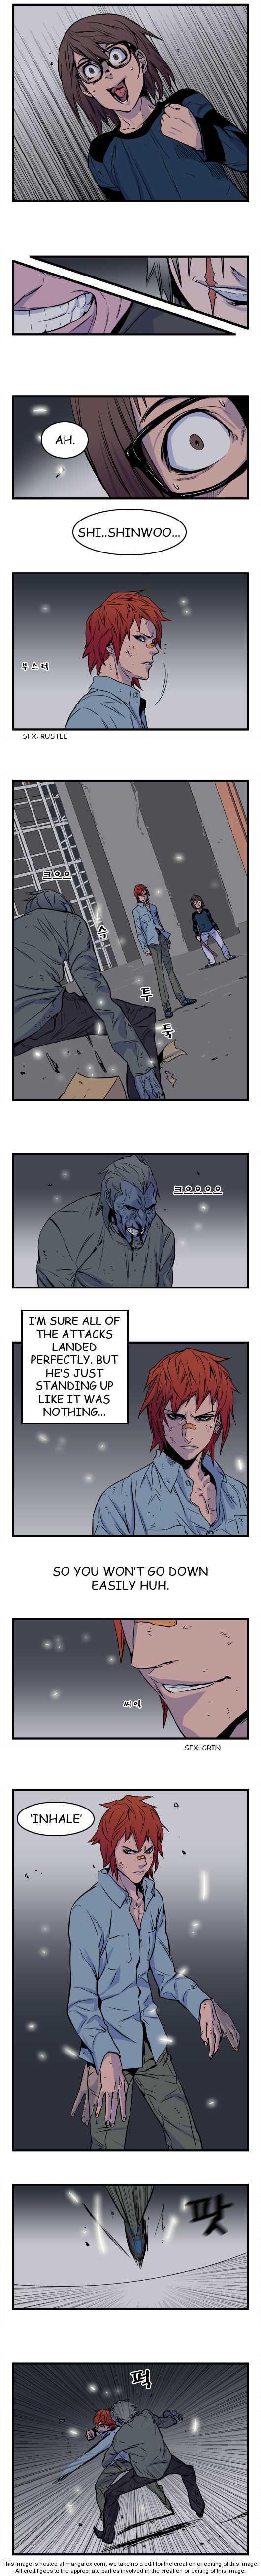 Noblesse 30 Page 3